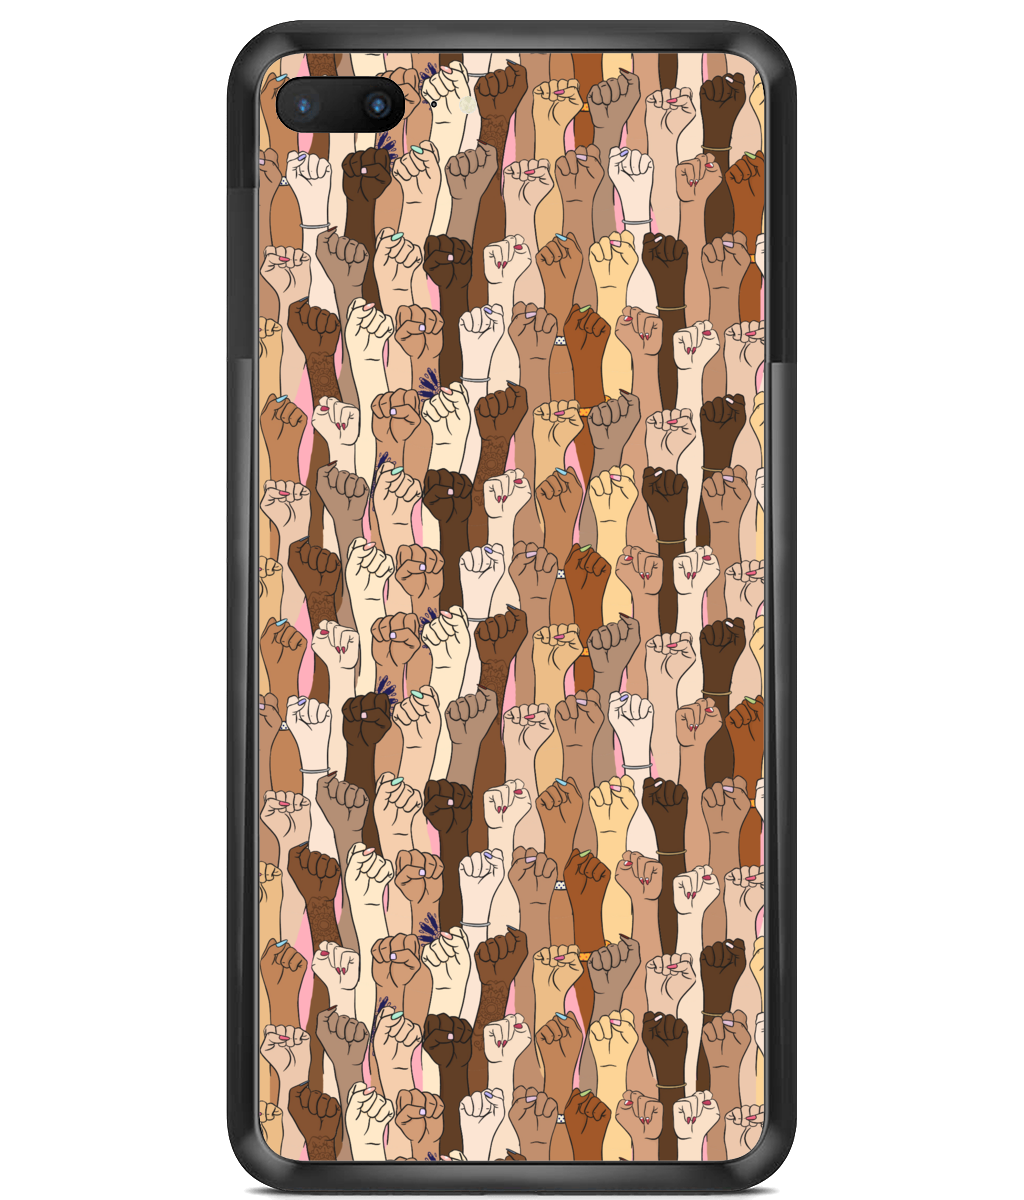 Sisterhood Premium Phone Case - House Of Wonderland, HOW